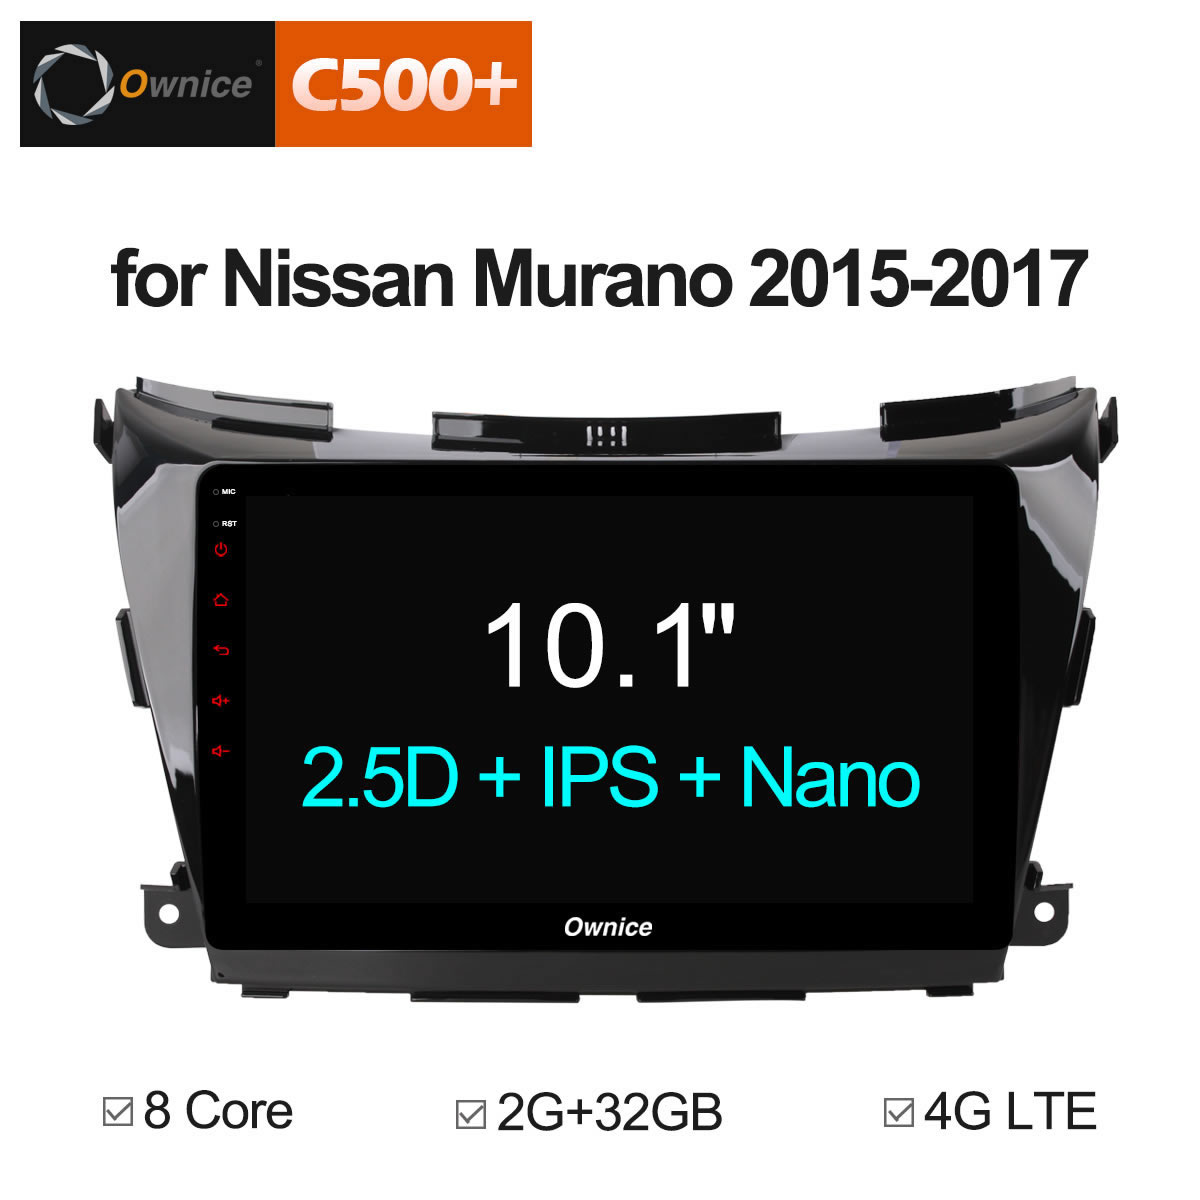 Ownice C500+ G10 Eight Core Android 8.1 2GB RAM car dvd for Nissan NAVARA MURANO NP300 stereo radio gps 1080P 4G LTE DAB+ DVR special dvr without battery for ownice c500 car dvd and the dvd manufacture date must after 10th of april 2017 included 10th